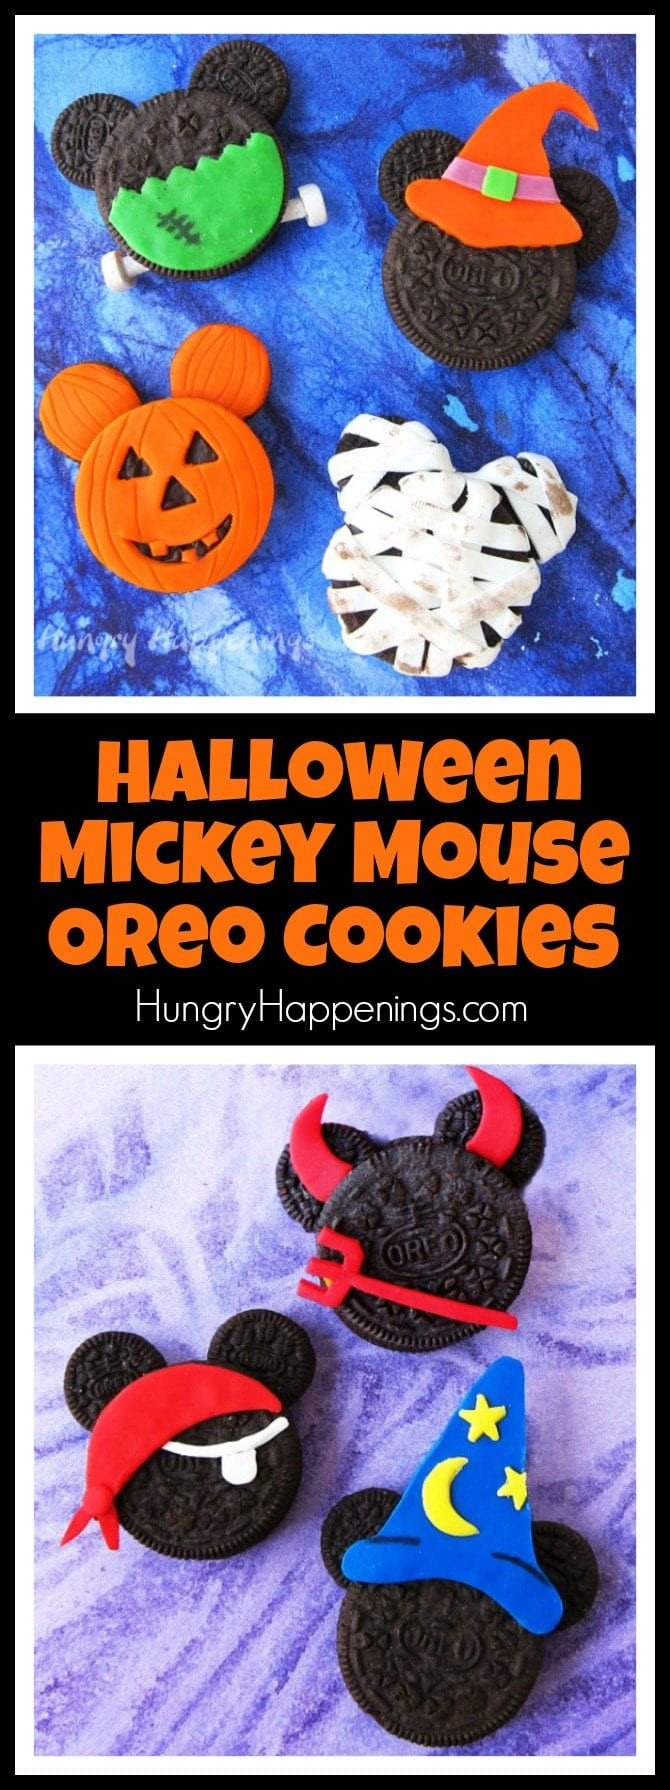 Halloween Mickey Mouse Oreo Cookies are fun to decorate using candy clay. See how to turn Mickey into a pirate, jack-o-lantern, mummy, devil, witch, vampire, wizard, and even Frankenstein's monster.